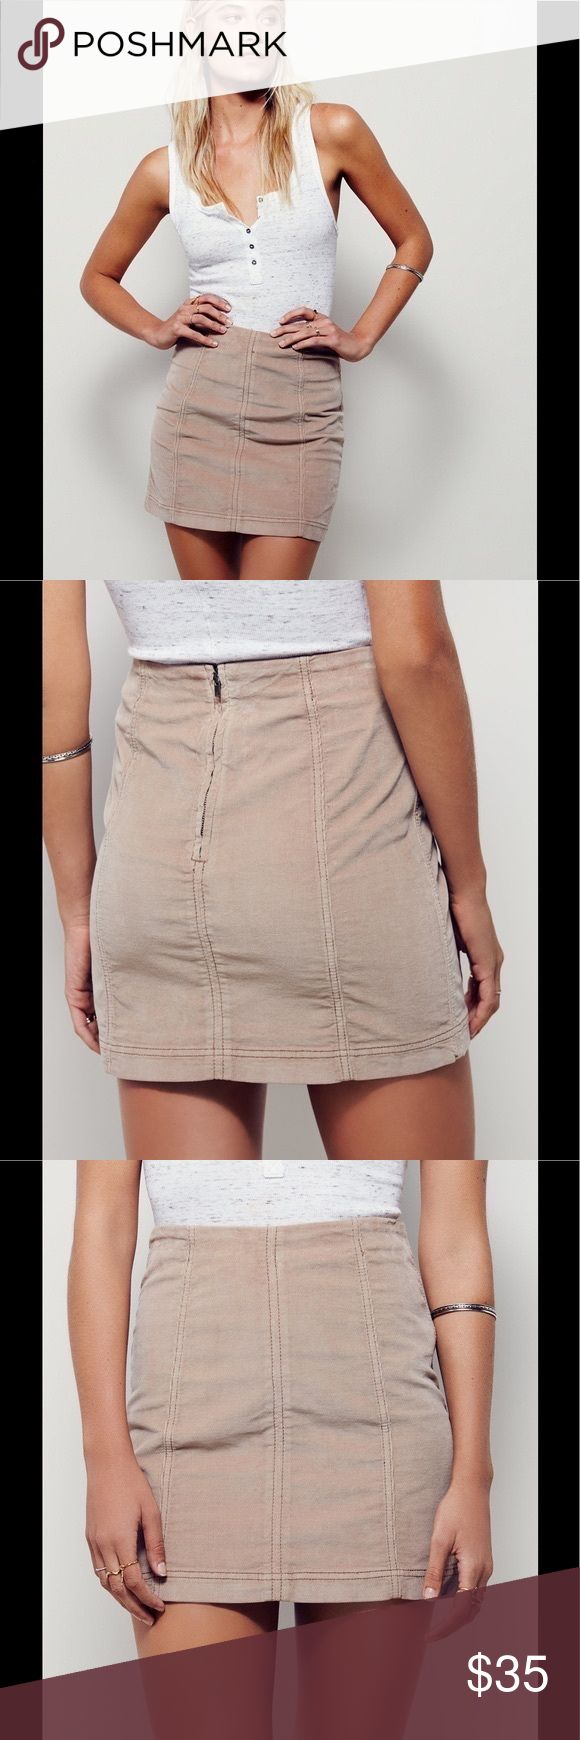 NWT Free People Femme Modern Corduroy Mini Skirt Manufacturer: Free People Size: 6 Size Origin: US Manufacturer Color: Mushroom Retail: $50.00 Condition: New without tags Style Type: Mini Collection: Free People Bottom Closure: Exposed Back Zipper Length: Micro Mini Total Skirt Length: 16 Inches Waist Across: 13 1/4 Inches Hips Across: 17 Inches Material: 98% Cotton/2% Spandex Fabric Type: Corduroy Specialty: Stretch #111 Free People Skirts Mini